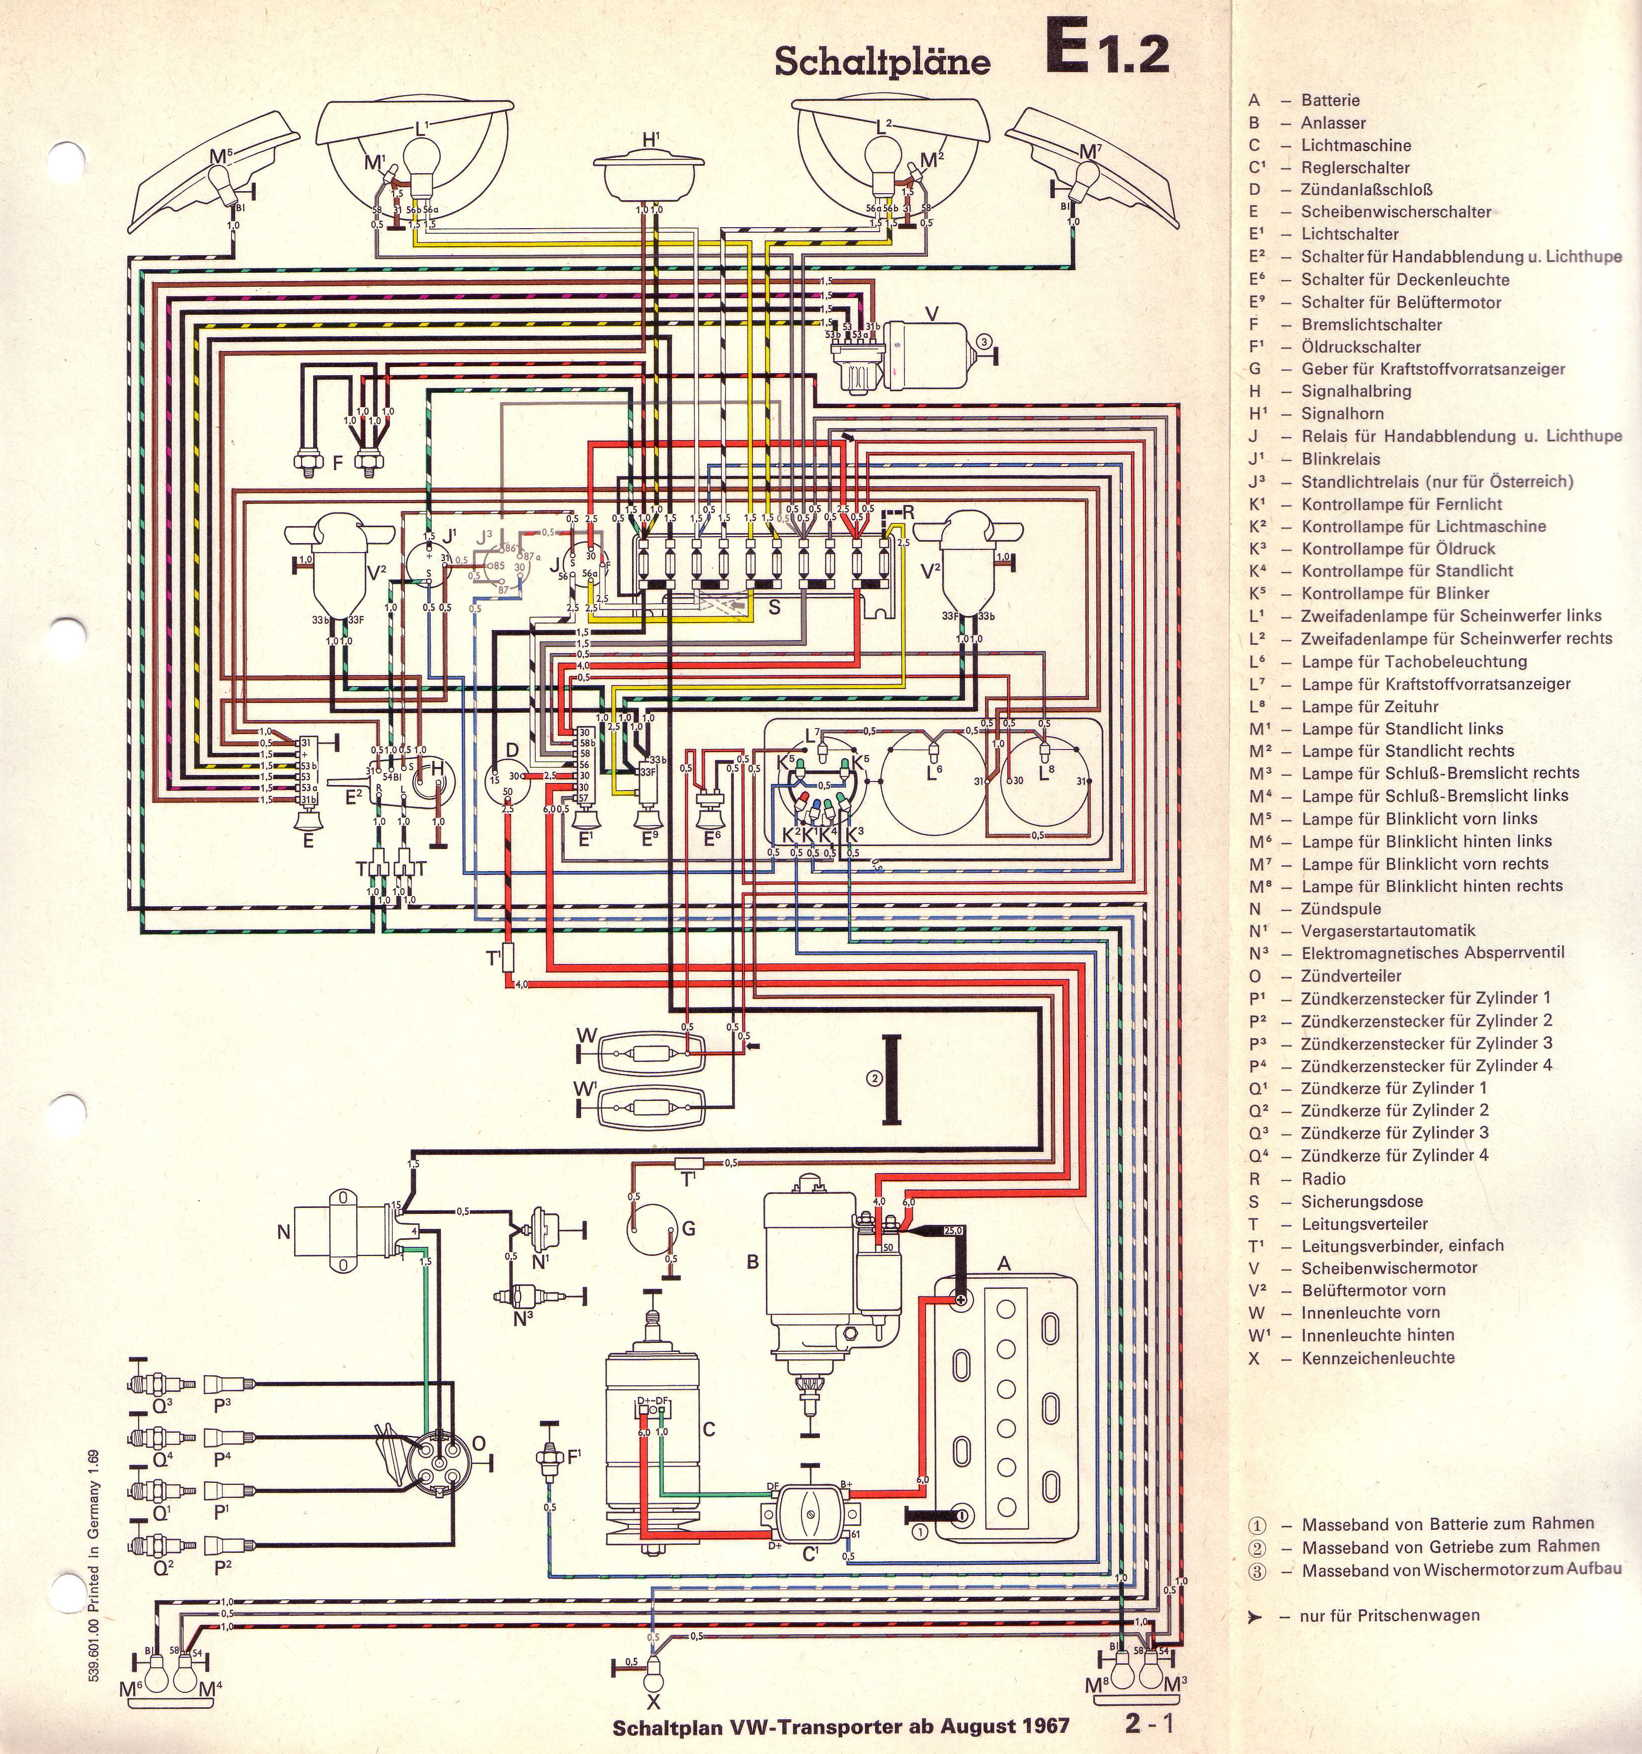 Vw T2 Wiring Diagram 1977 Library Volkswagen T5 Transporter 16 L Vergasermotor Ab August 1967